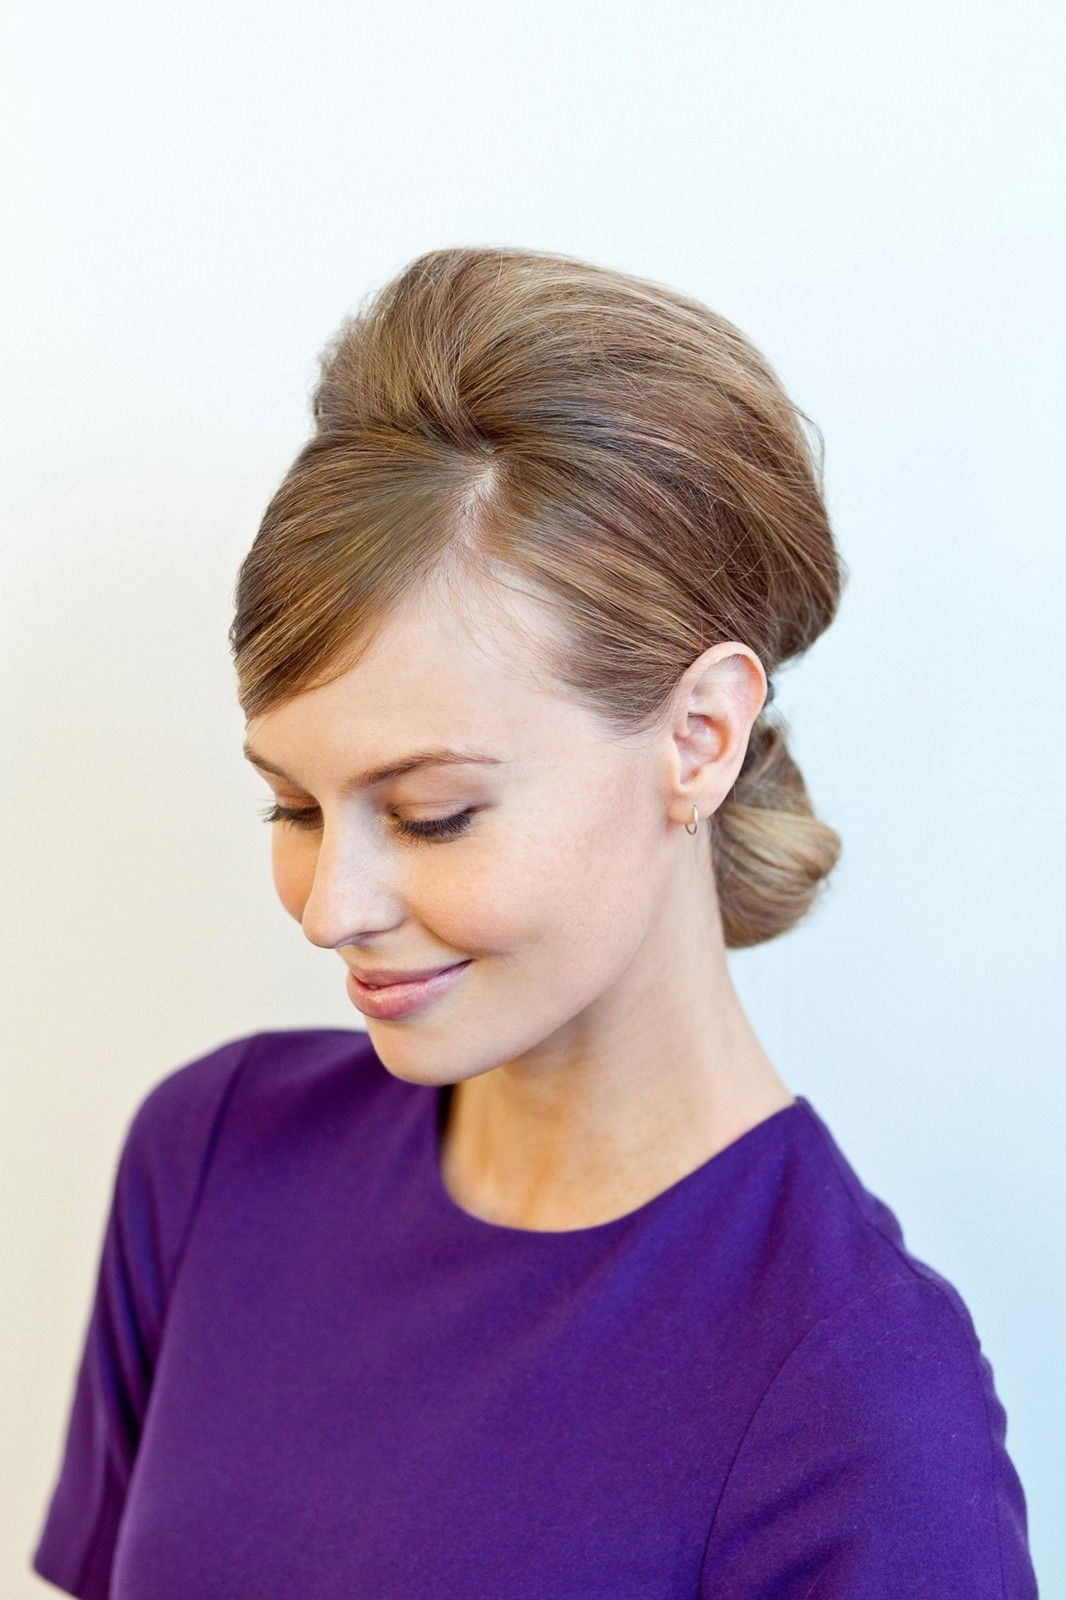 Party hairstyles how to do easy hairdos for parties party